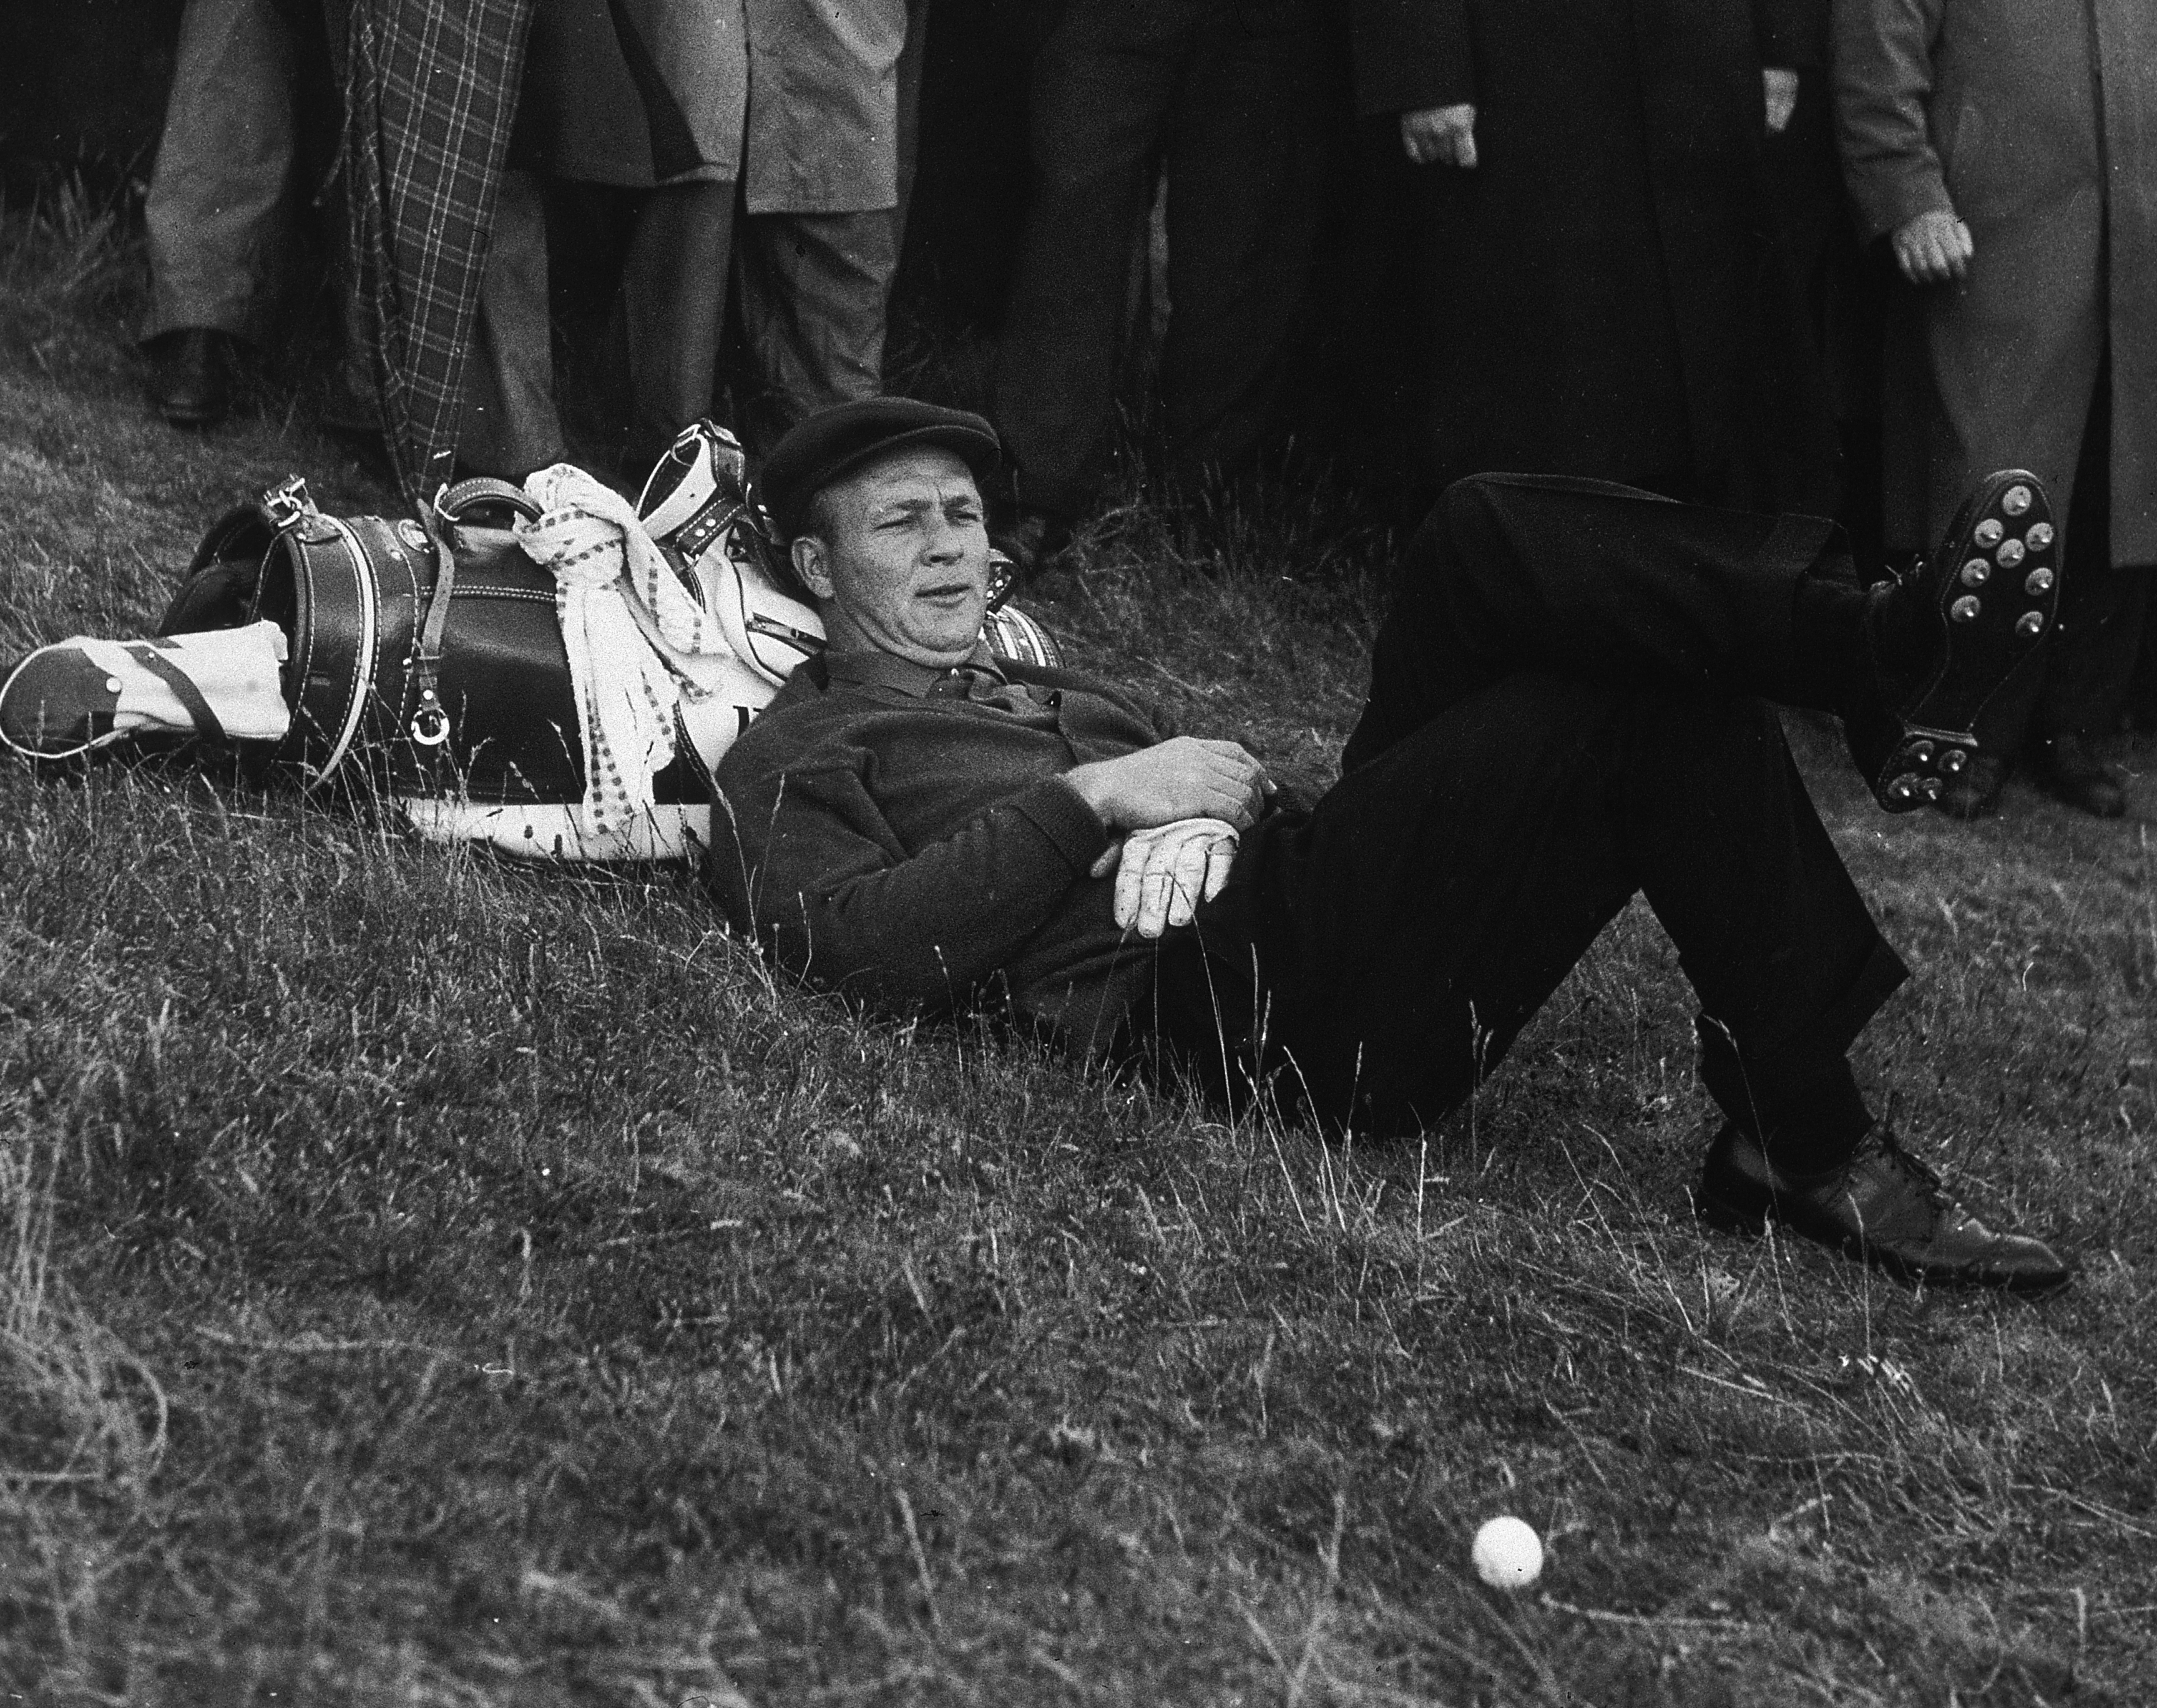 Arnold Palmer lays his head on his golf bag while taking a break between shots during a golf tournament in 1961.